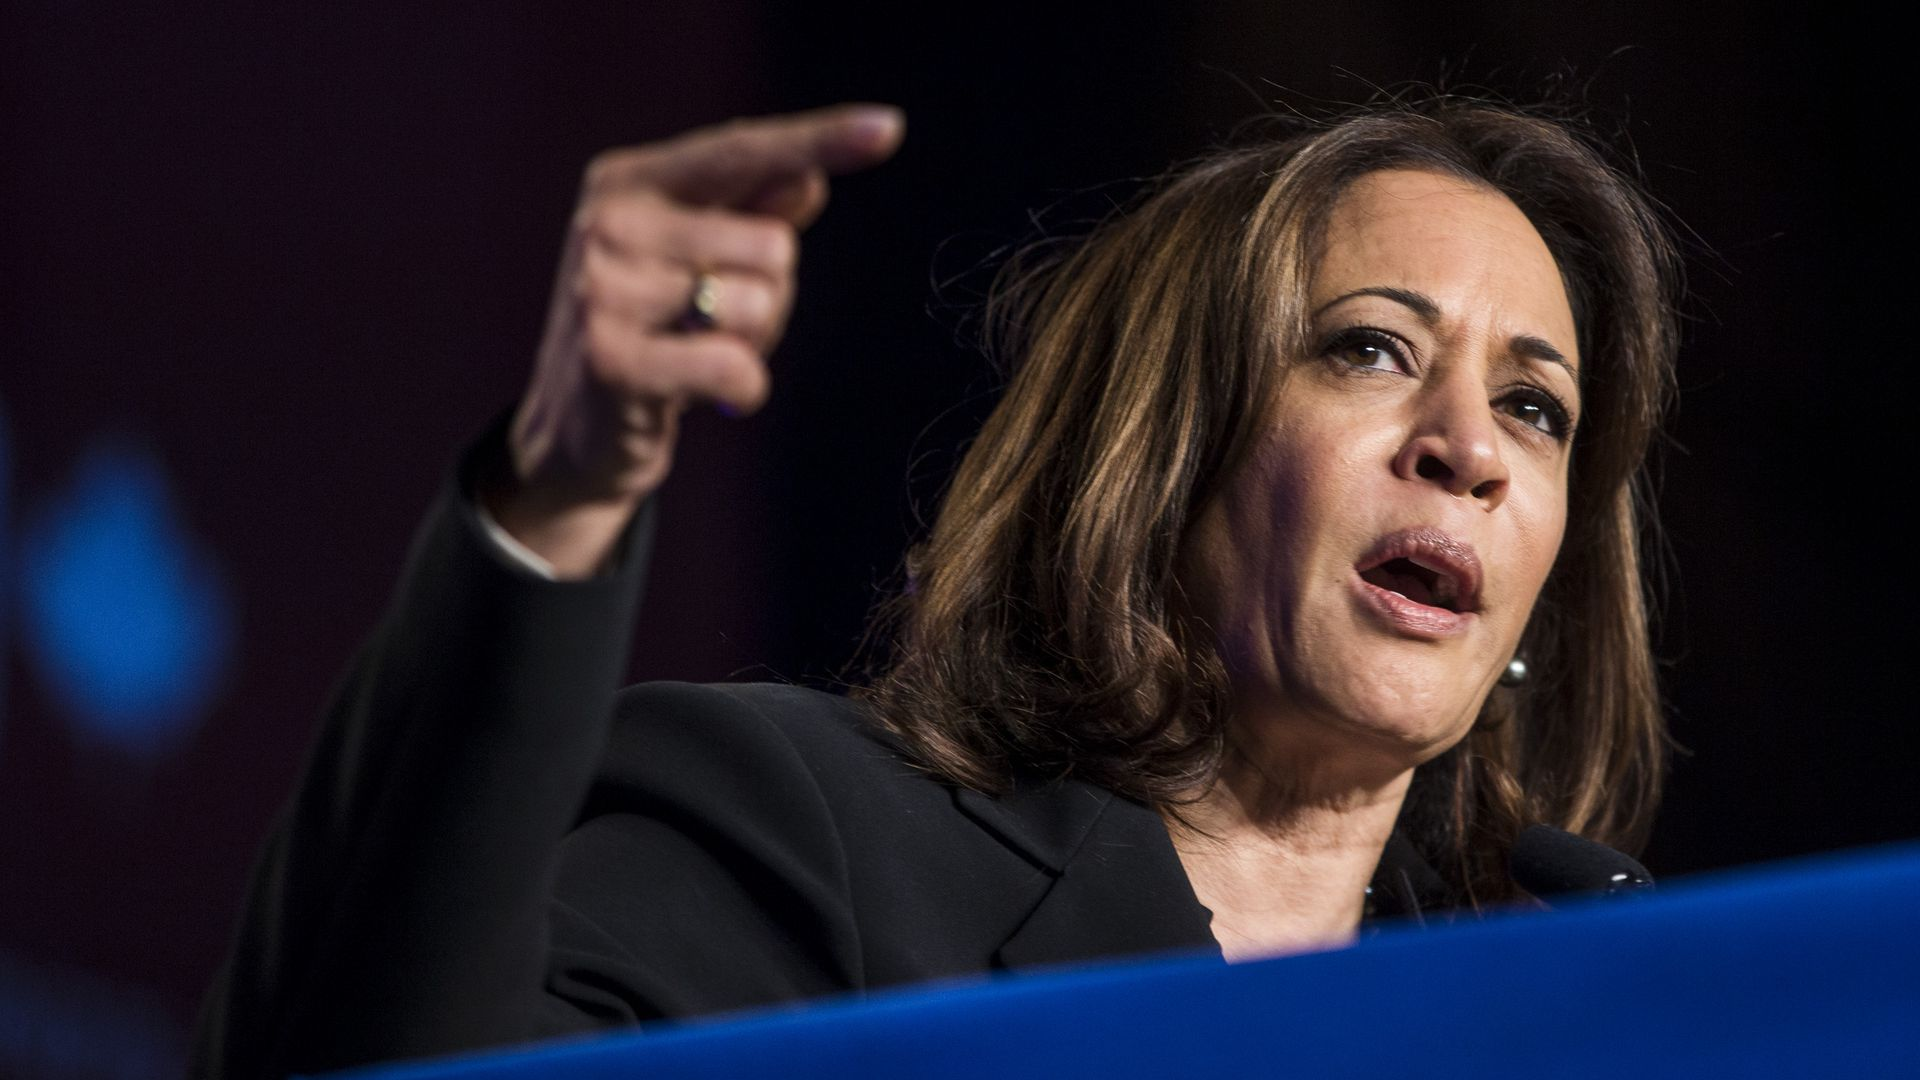 In this image, Kamala Harris speaks and points.